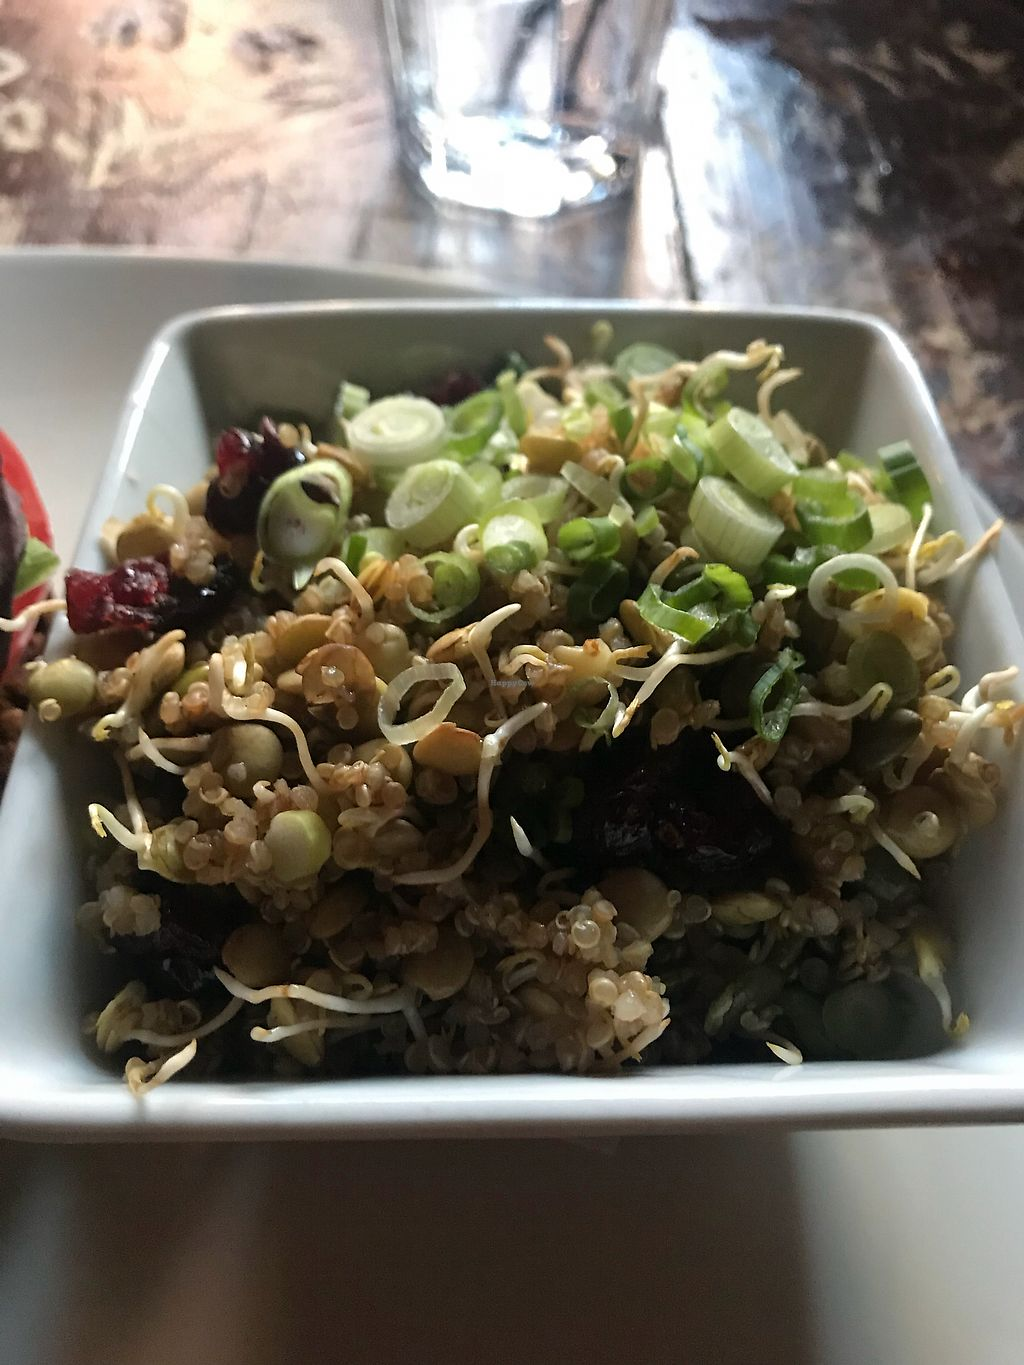 """Photo of Broken City  by <a href=""""/members/profile/AdrianLondon"""">AdrianLondon</a> <br/>Quinoa Lentil Salad <br/> November 5, 2017  - <a href='/contact/abuse/image/42957/322350'>Report</a>"""